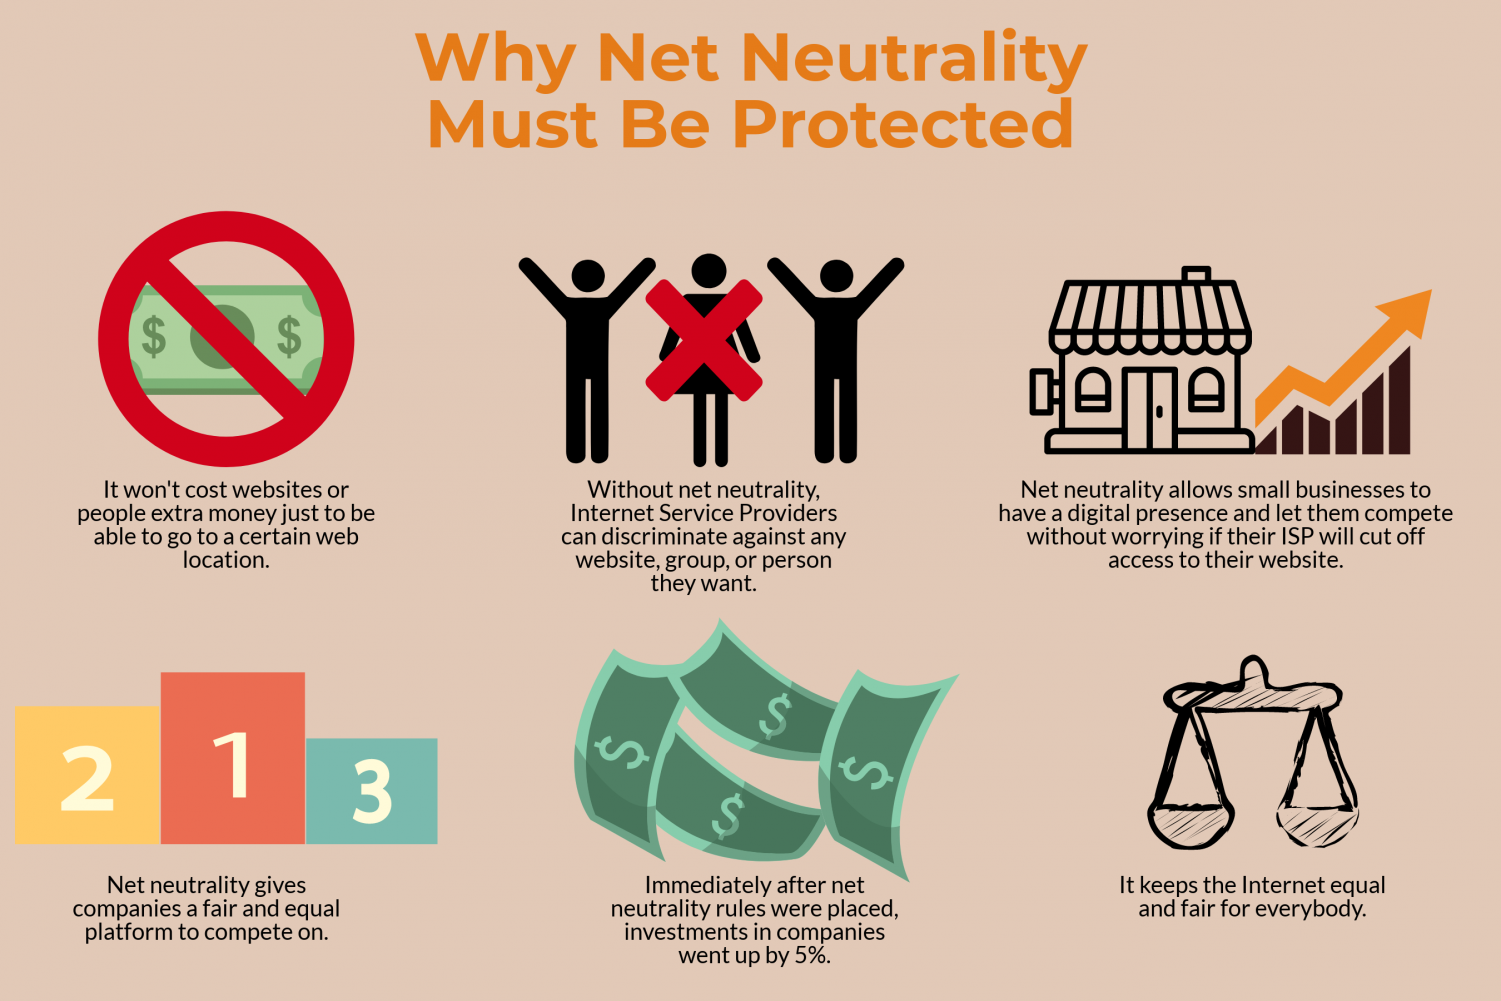 An infographic that explains why net neutrality should not be repealed. Without net neutrality, the internet will have many problems.